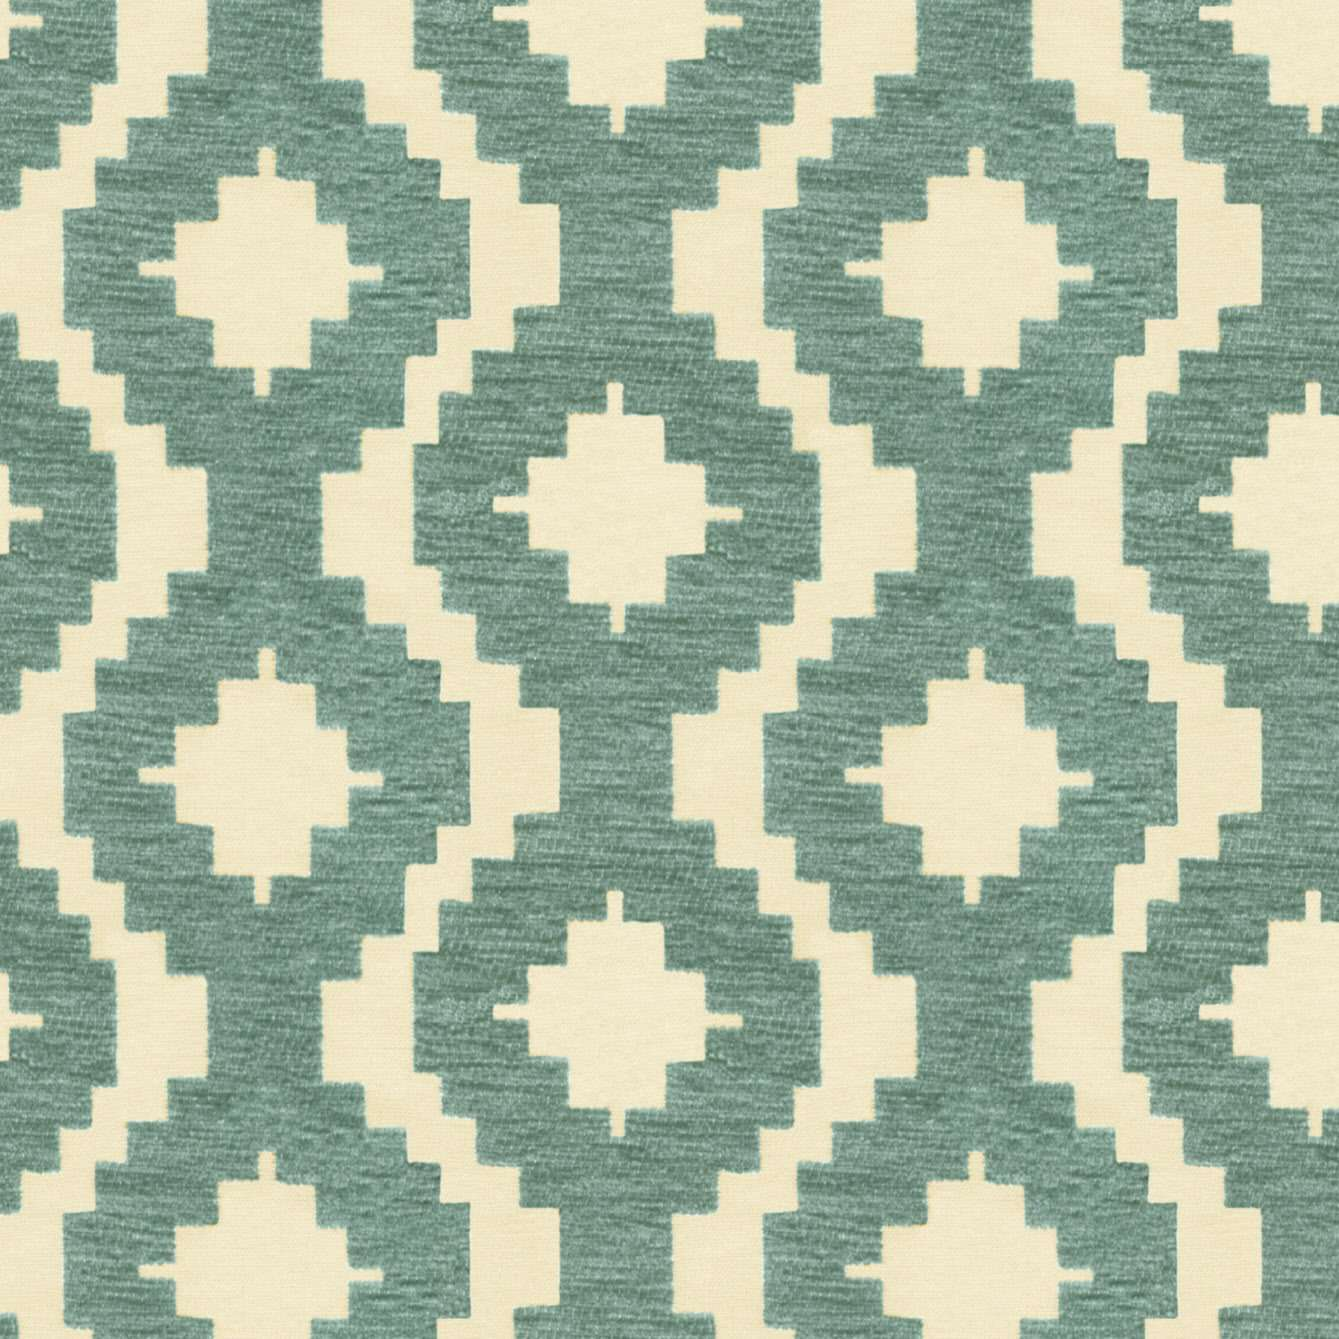 McAlister Textiles Arizona Geometric Duck Egg Blue Fabric Fabrics 1 Metre